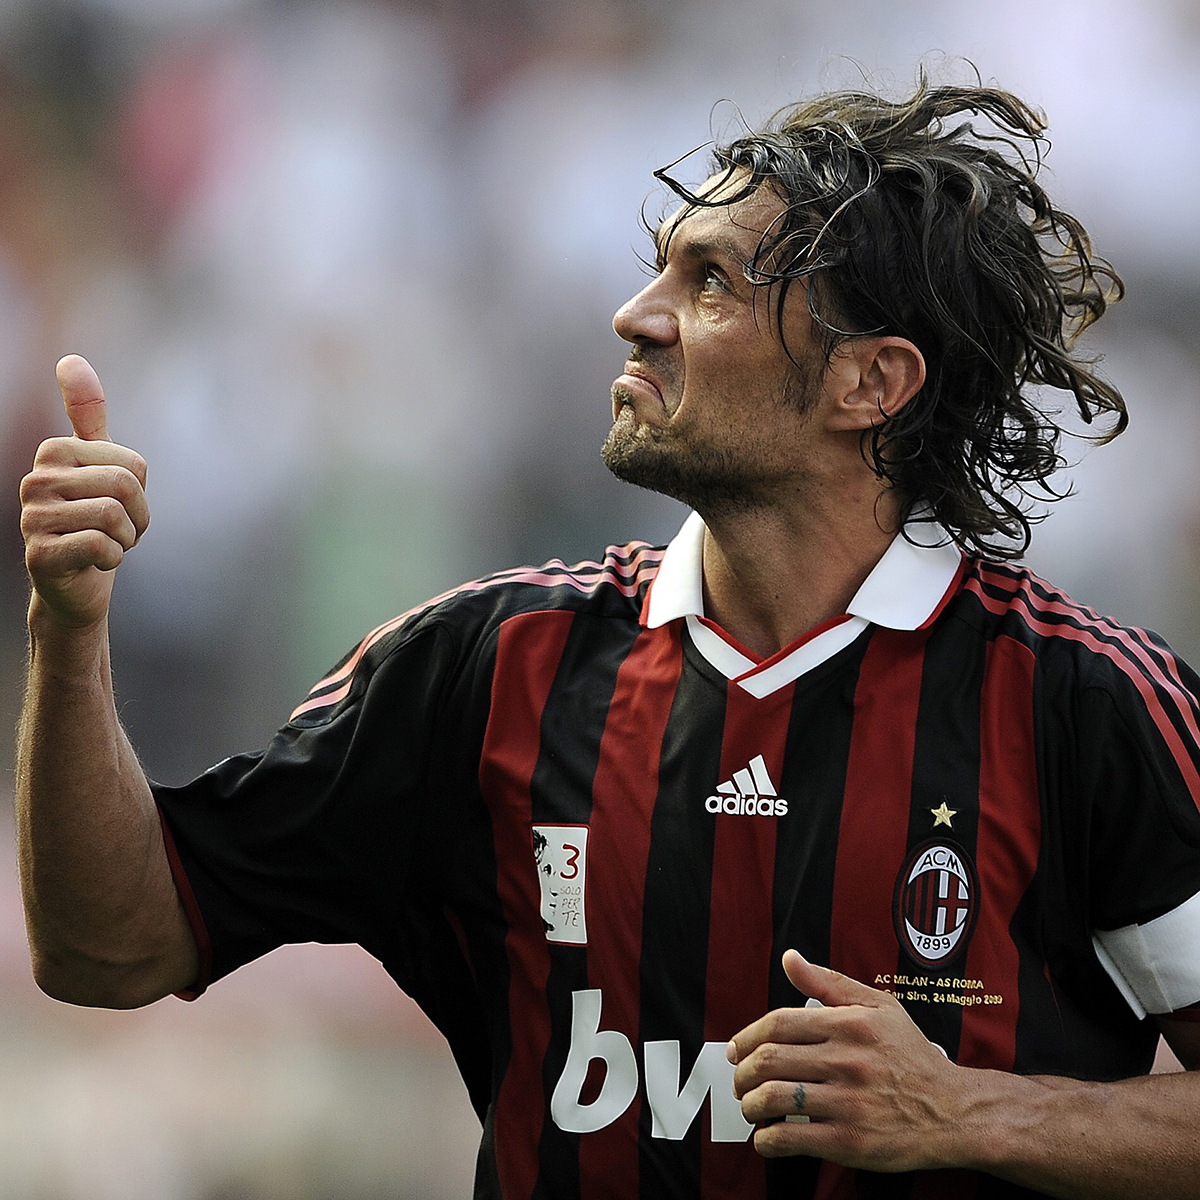 Fan Hd Wallpaper San Siro Send Off Turns Sour For Capitano Maldini James